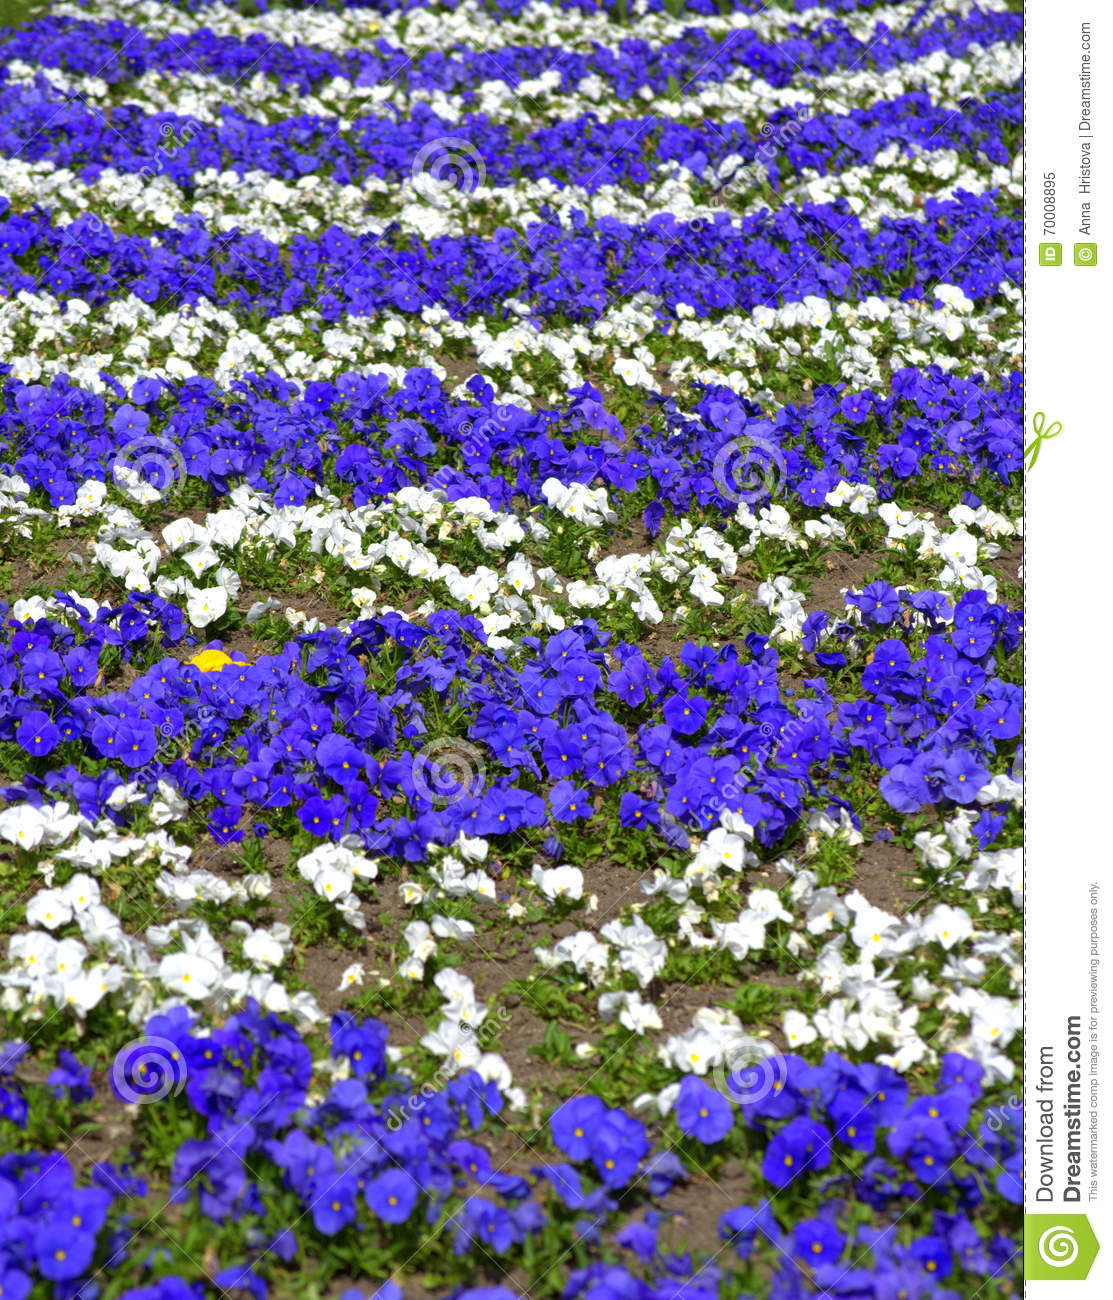 Blue white pansy flowers stock image image of ornamental 70008895 download comp mightylinksfo